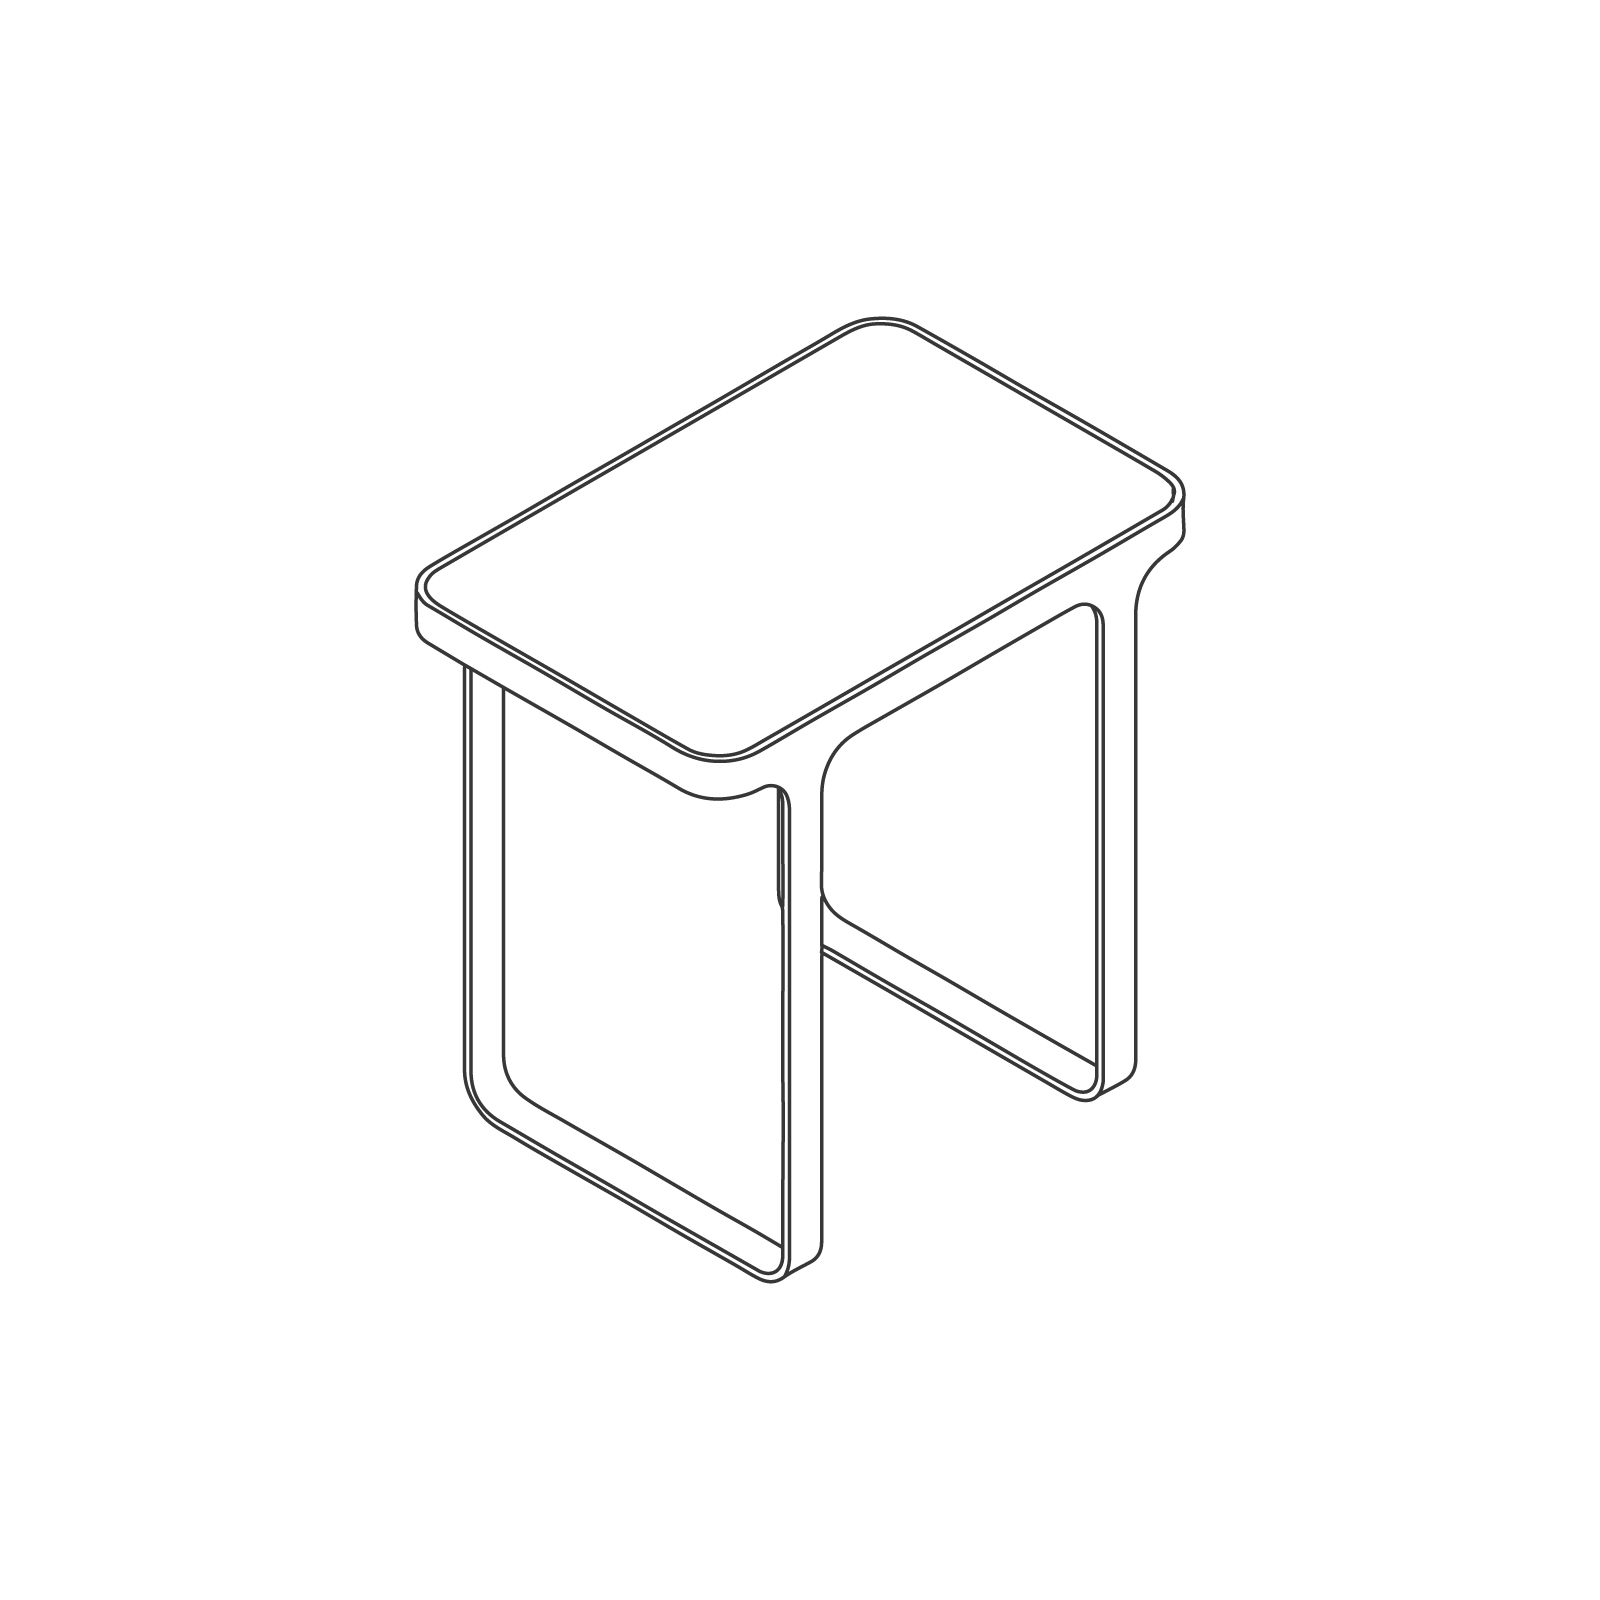 A line drawing of Trace Side Table.